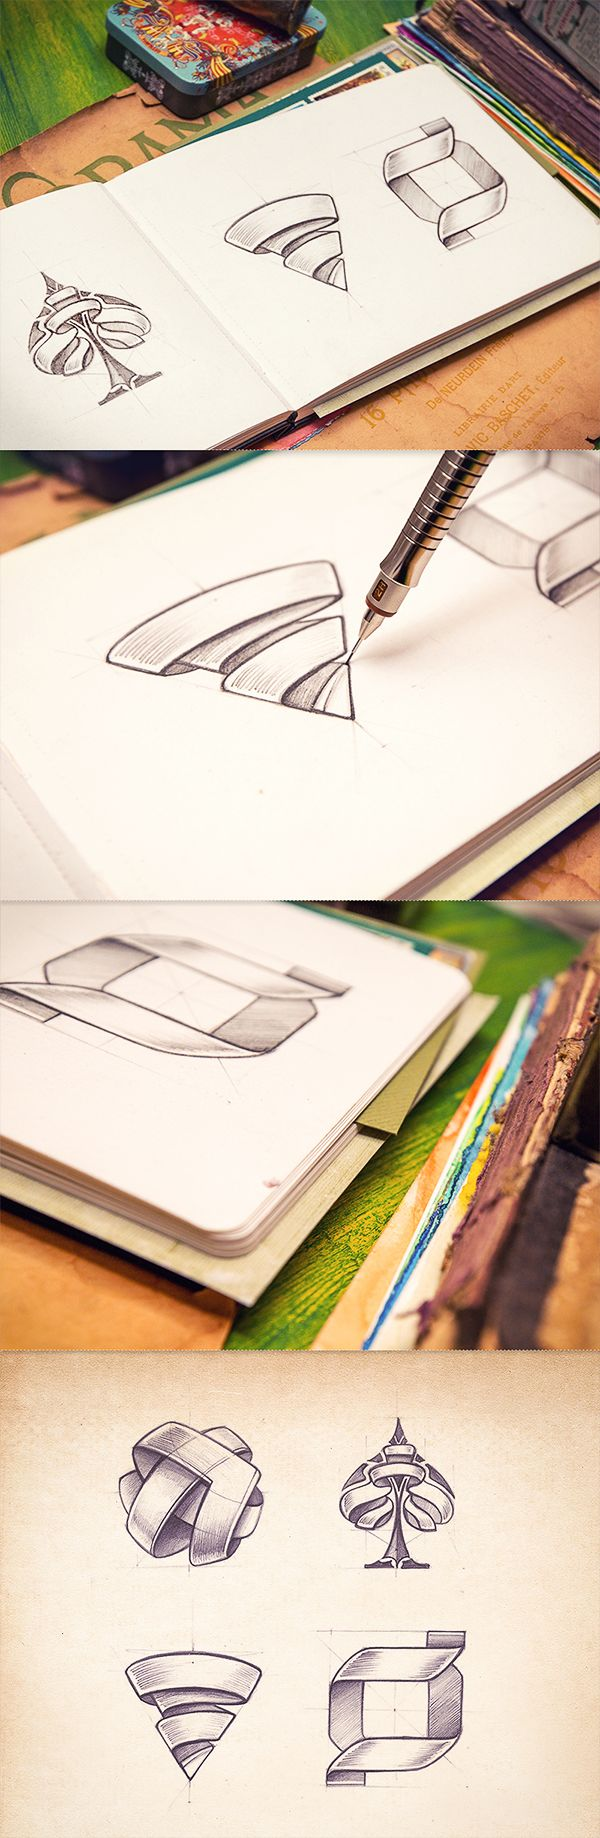 Sketchbook on Behance